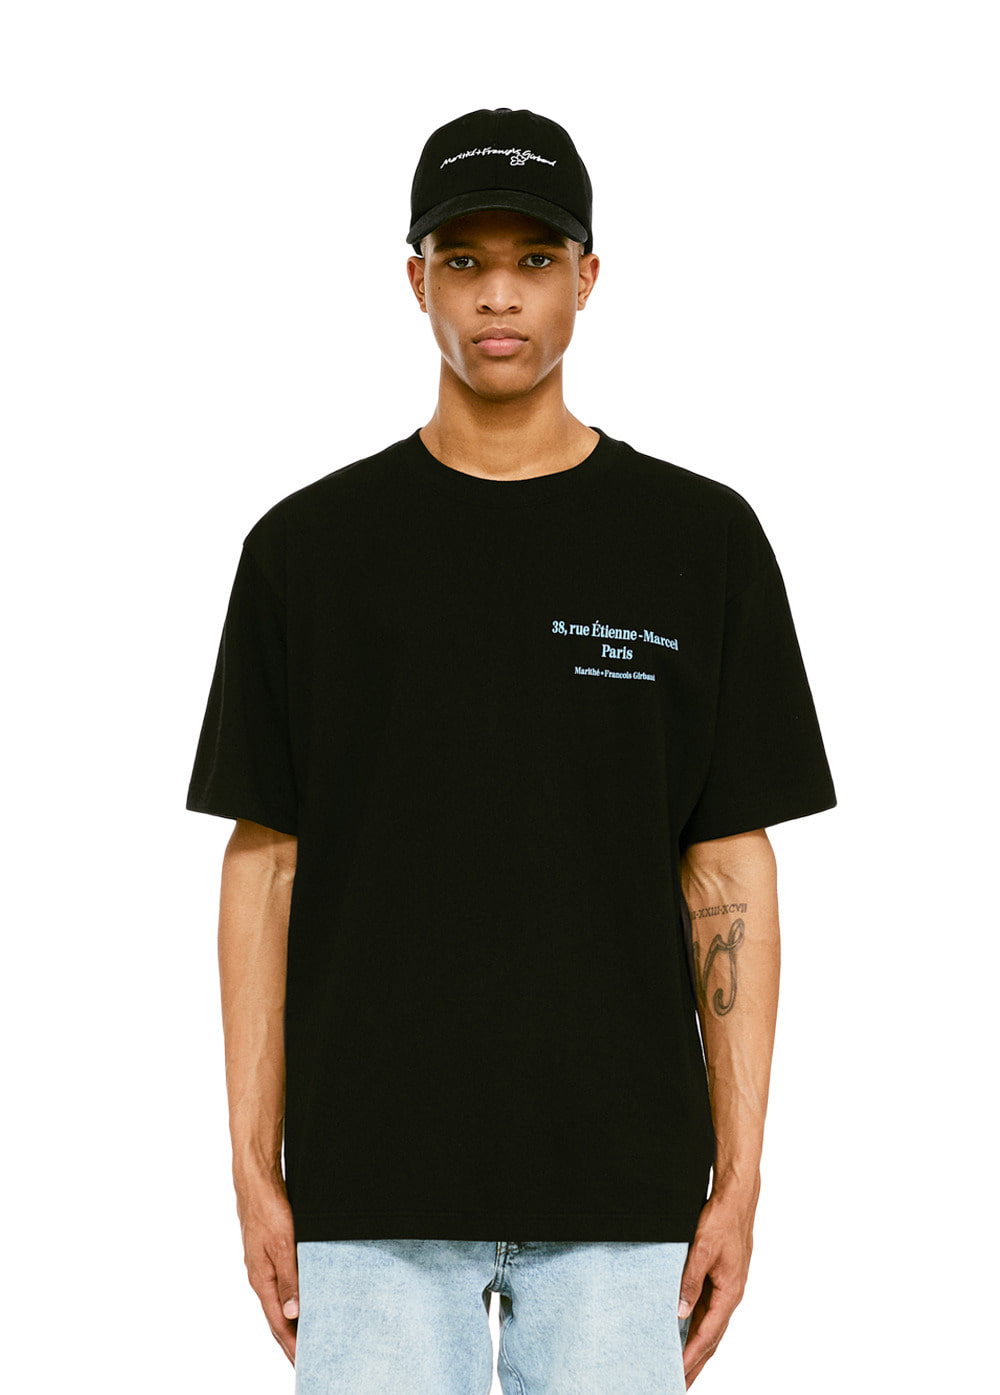 MFG L ADRESSE TEE black